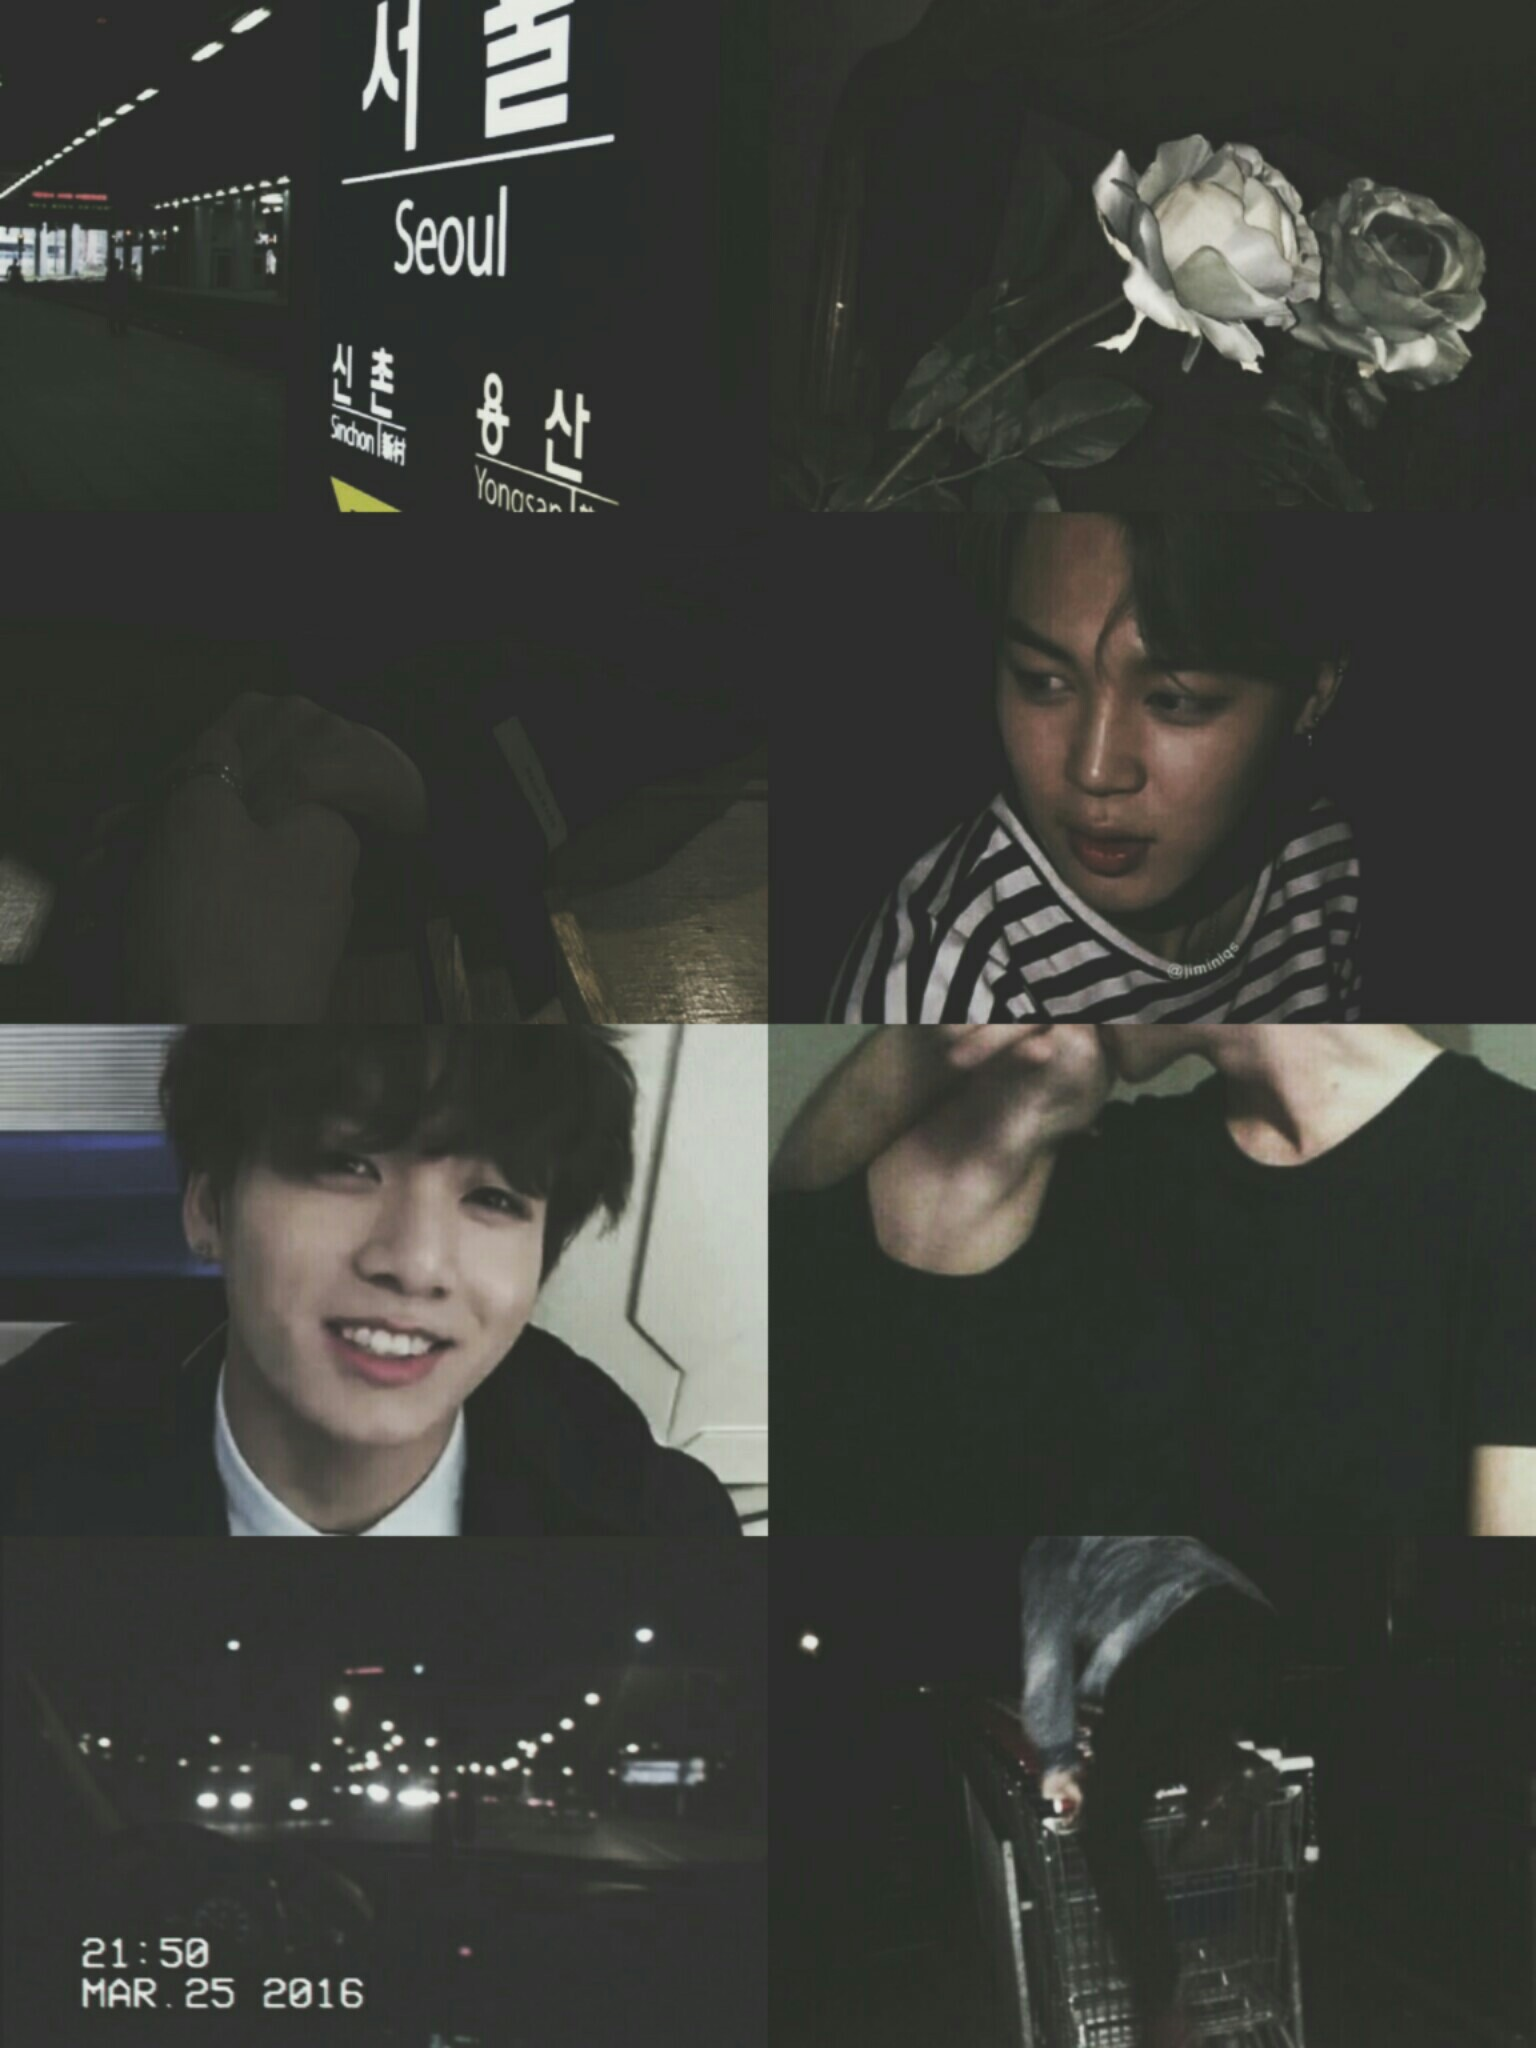 Bts Cute Wallpaper Jikook As Boyfriends Aesthetic Jikook Bts Jimin Jungk